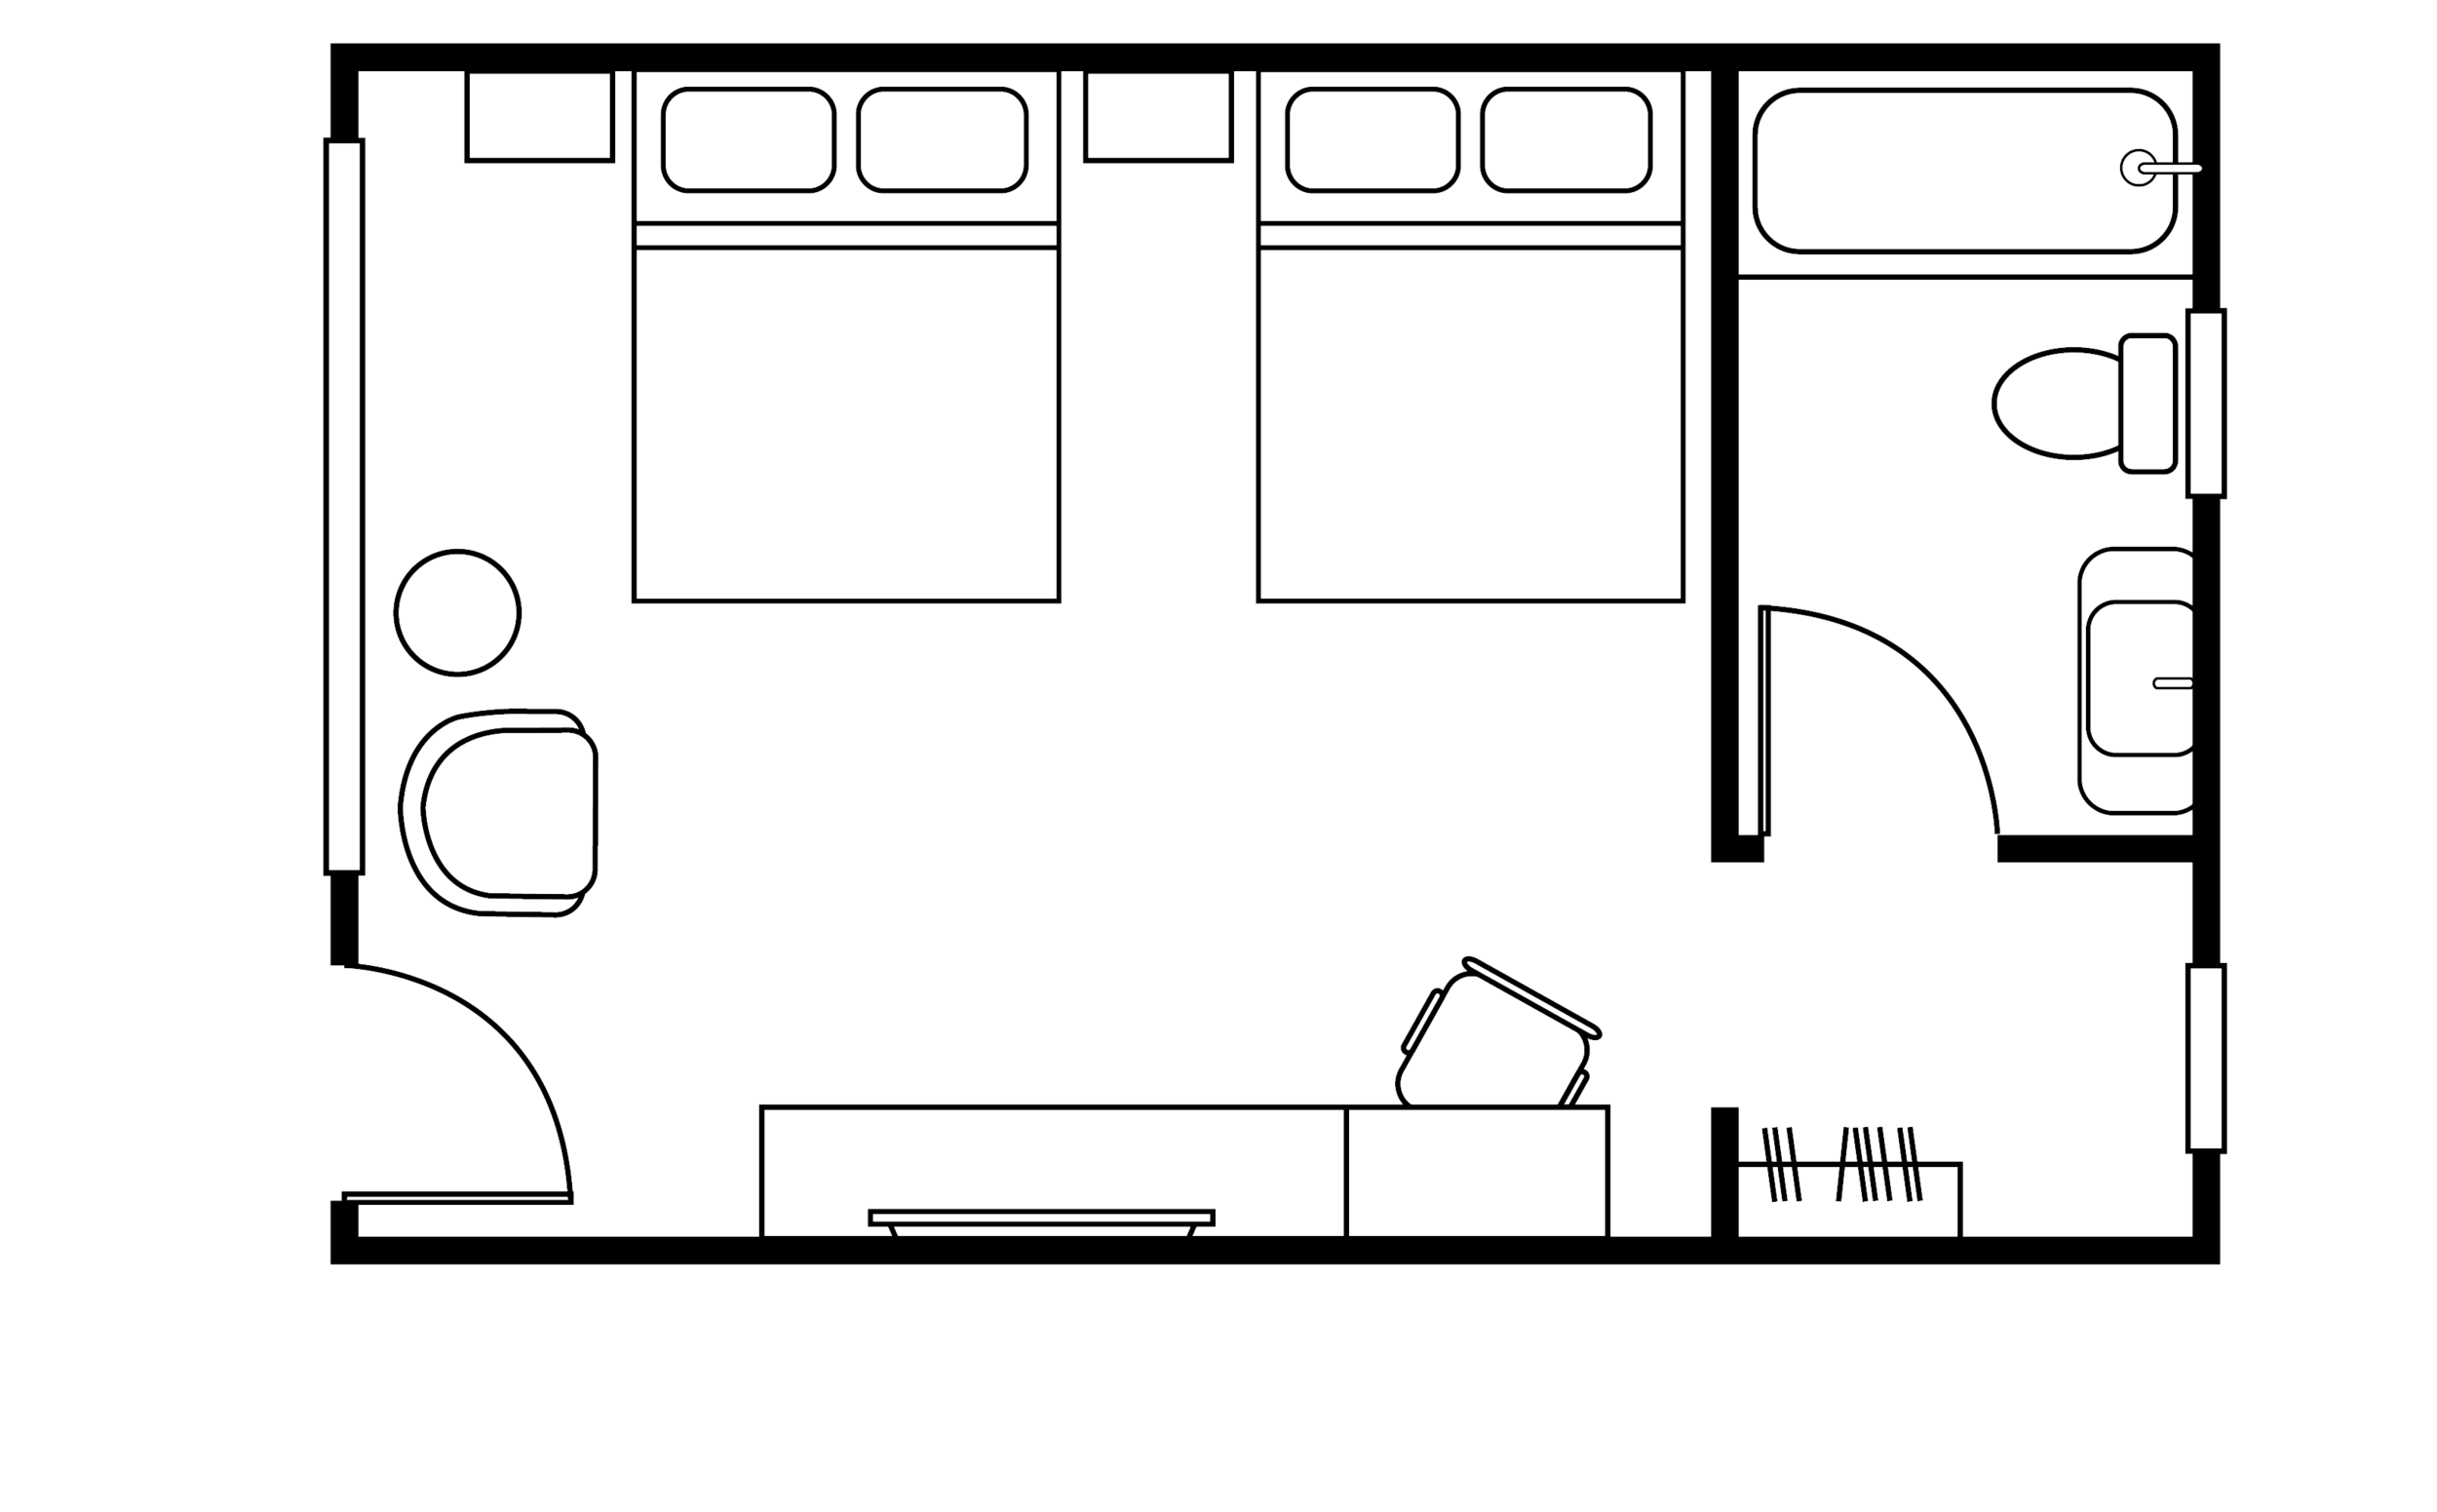 Room layouts-02.png